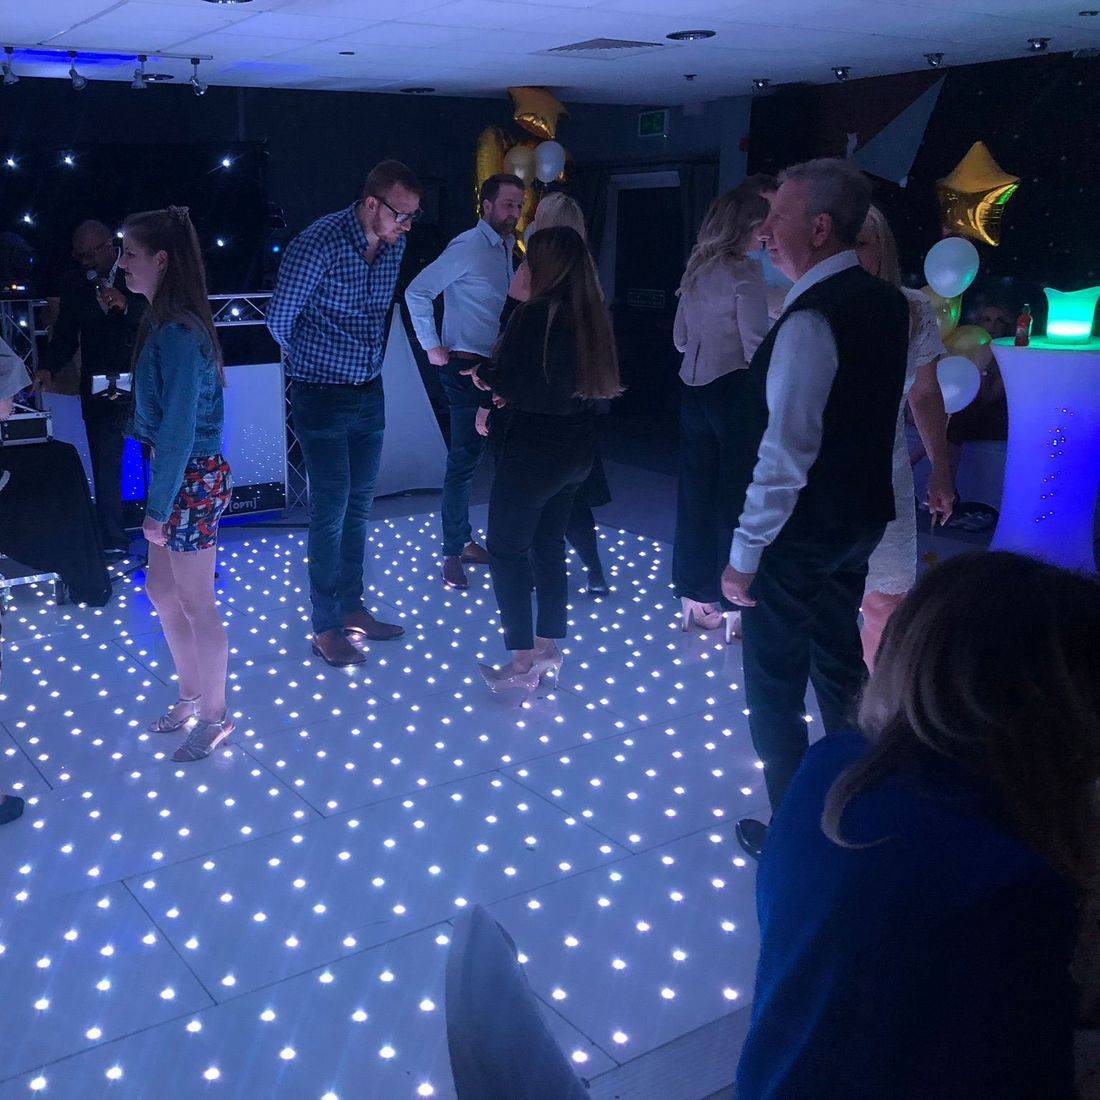 LED Starlit Dancefloor Stourbridge led Dancefloor Hire